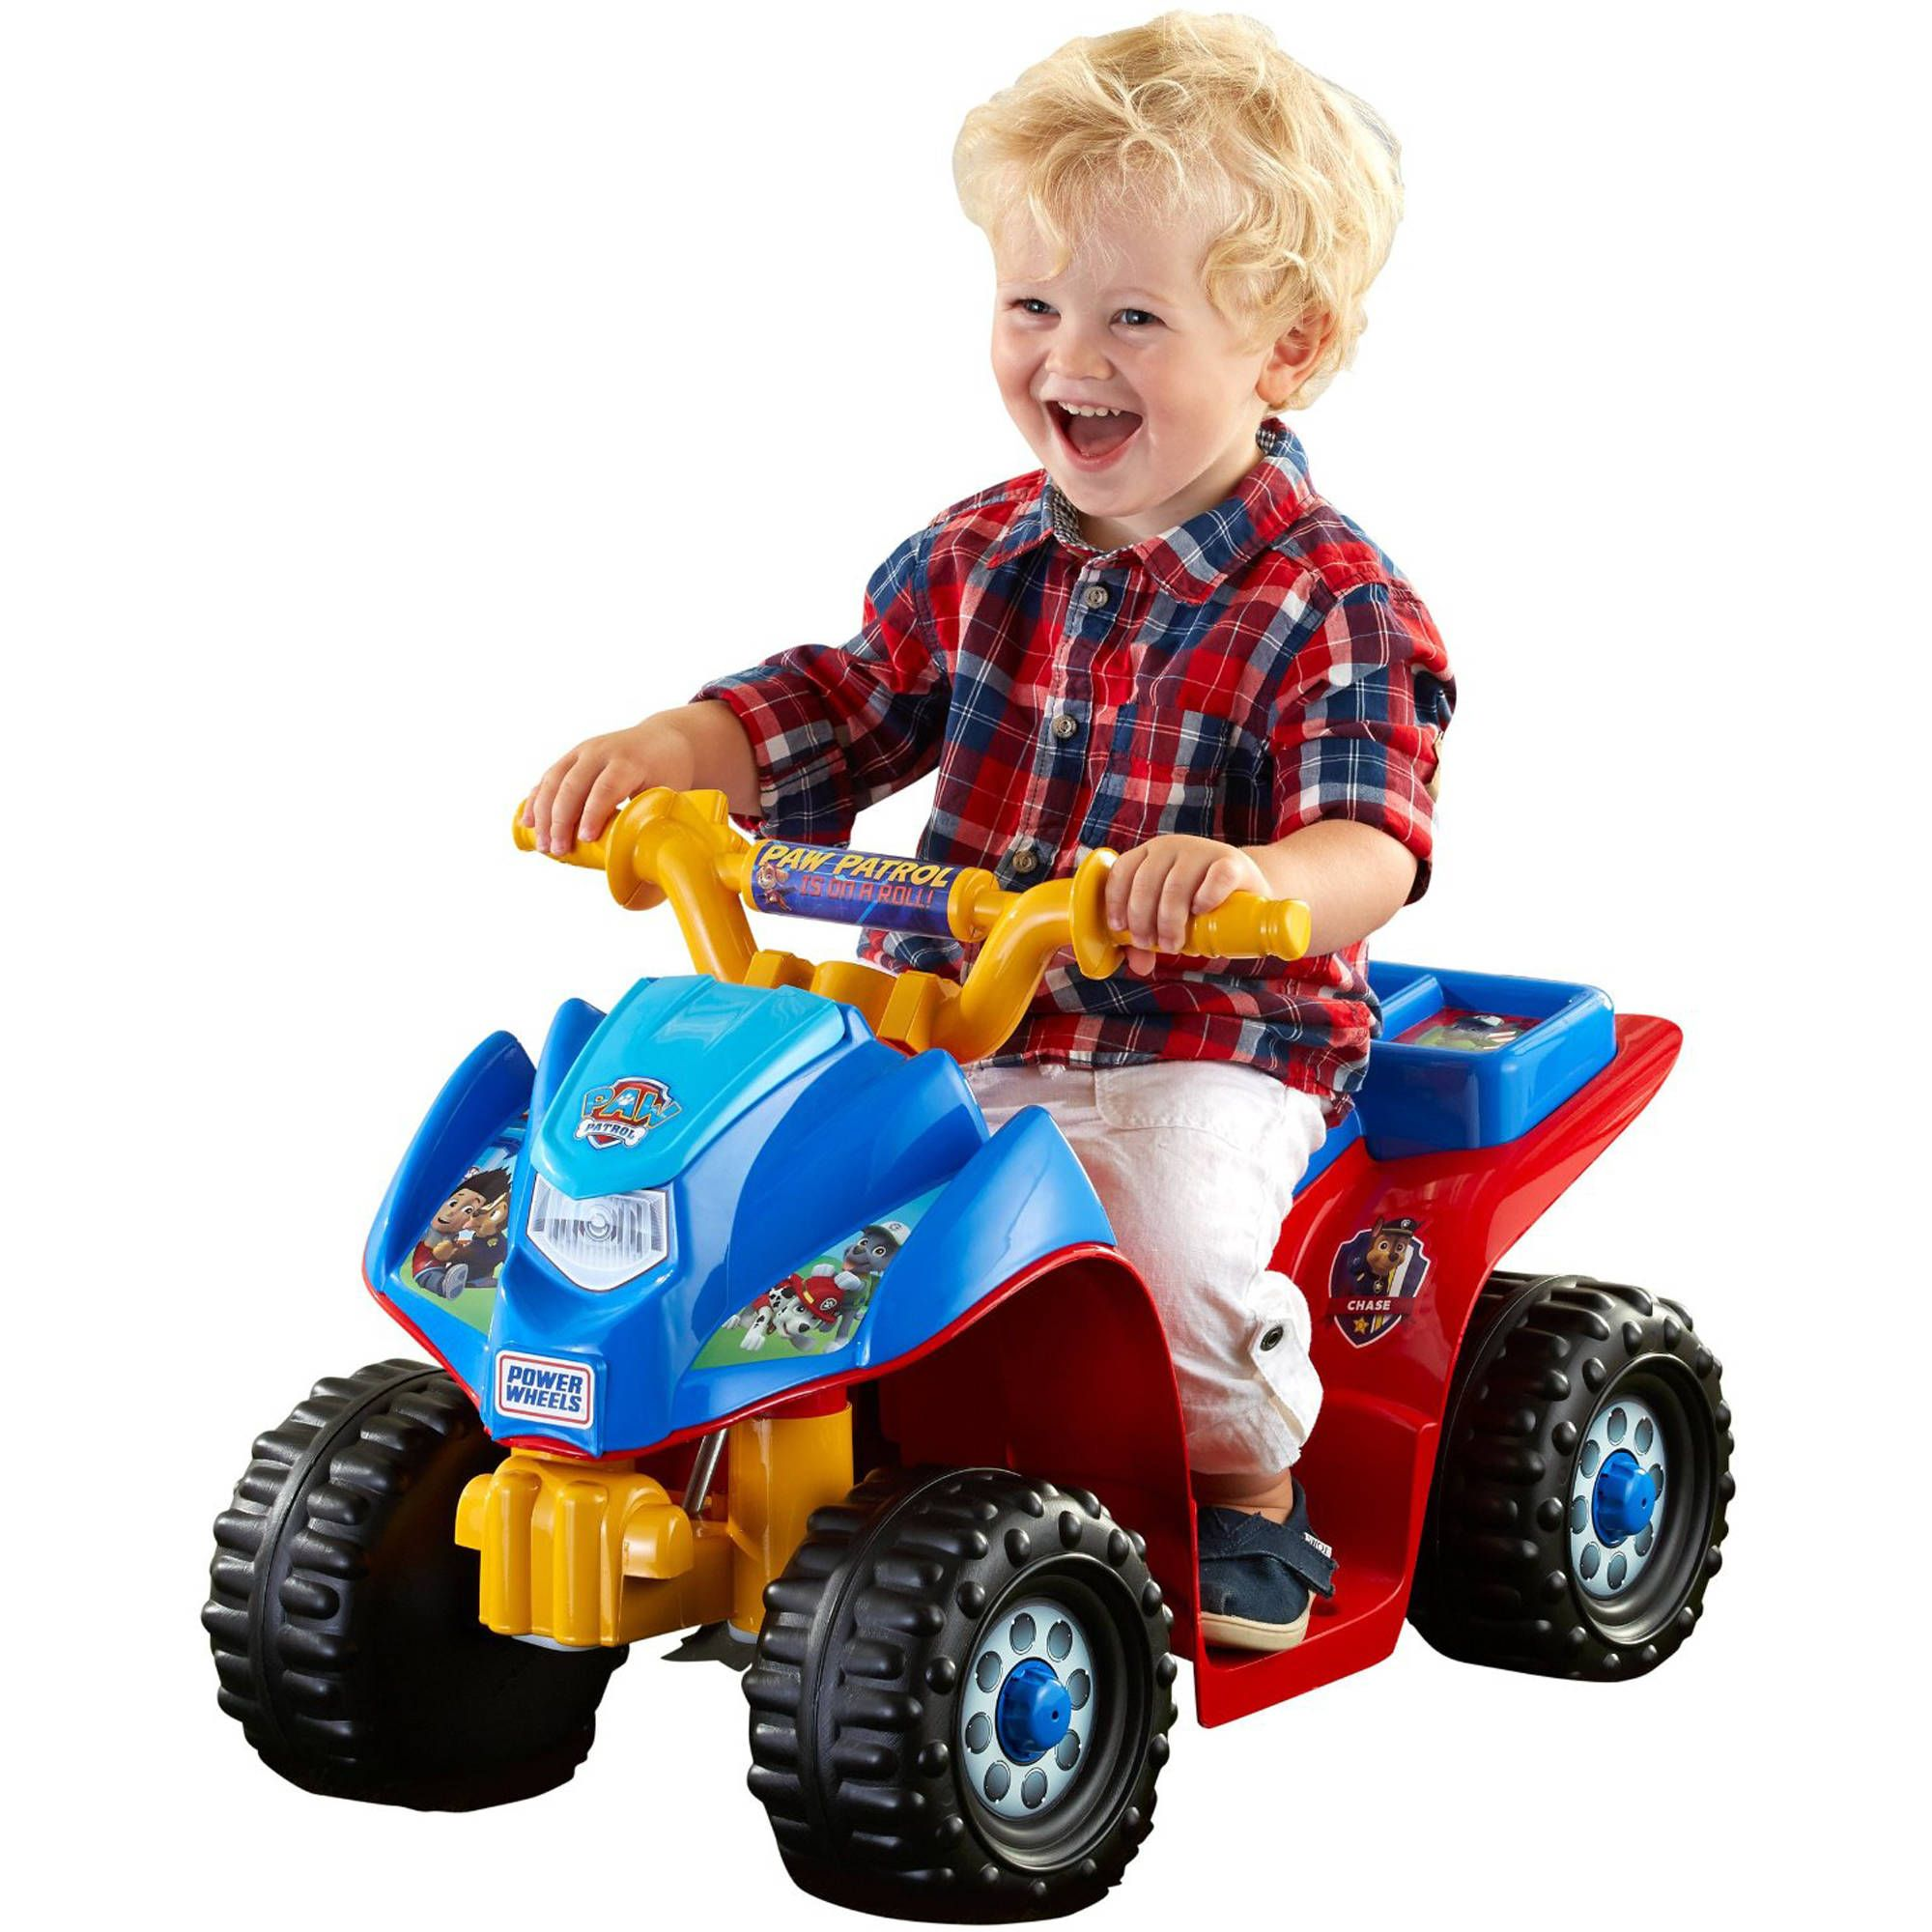 Find and pare more Children Toys Deals at extrabigfoot